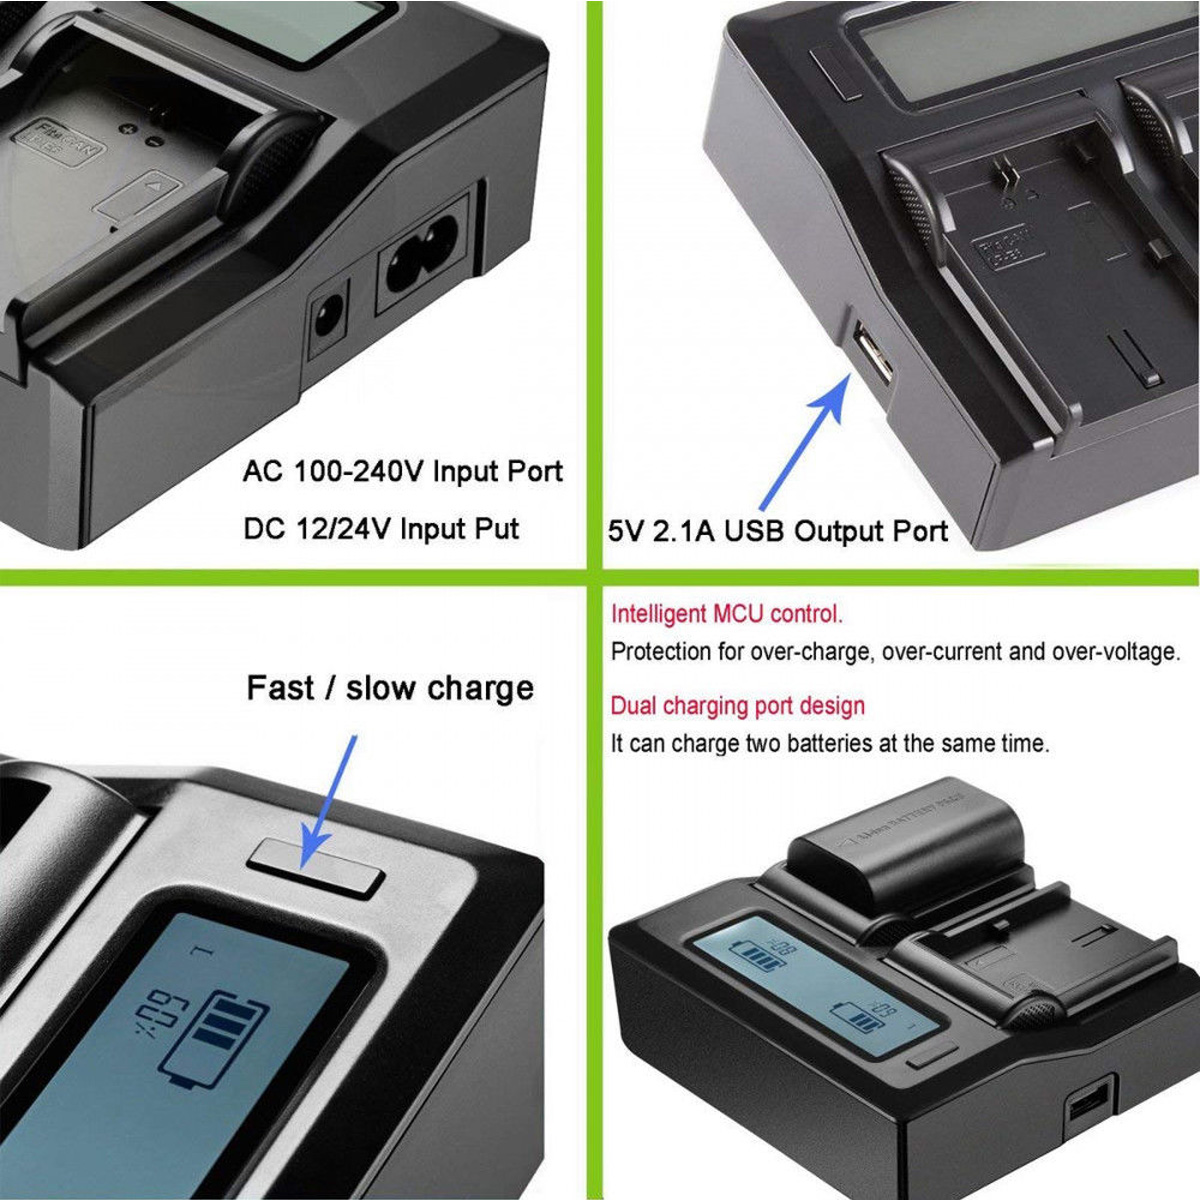 - Battery Charger for Panasonic CGR-D08 CGR-D28 Panasonic AJ-PX270PJ Camcorder Battery Charger CGR-D16 /& CGR-D54 Batteries 110//220v with Car /& EU adapters